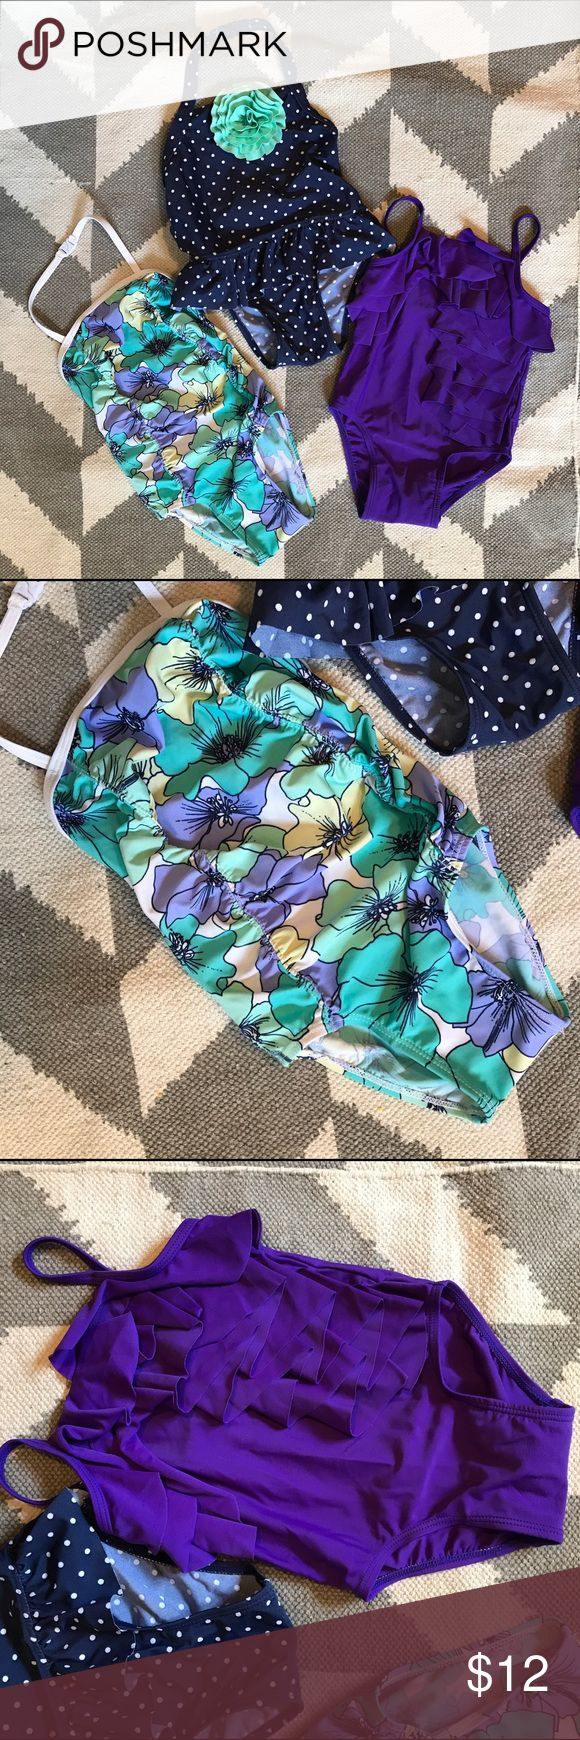 Toddler girl swimsuits Three Old Navy toddler girls swimsuits. All size 2T. Good condition lots of where left. Old Navy Swim One Piece